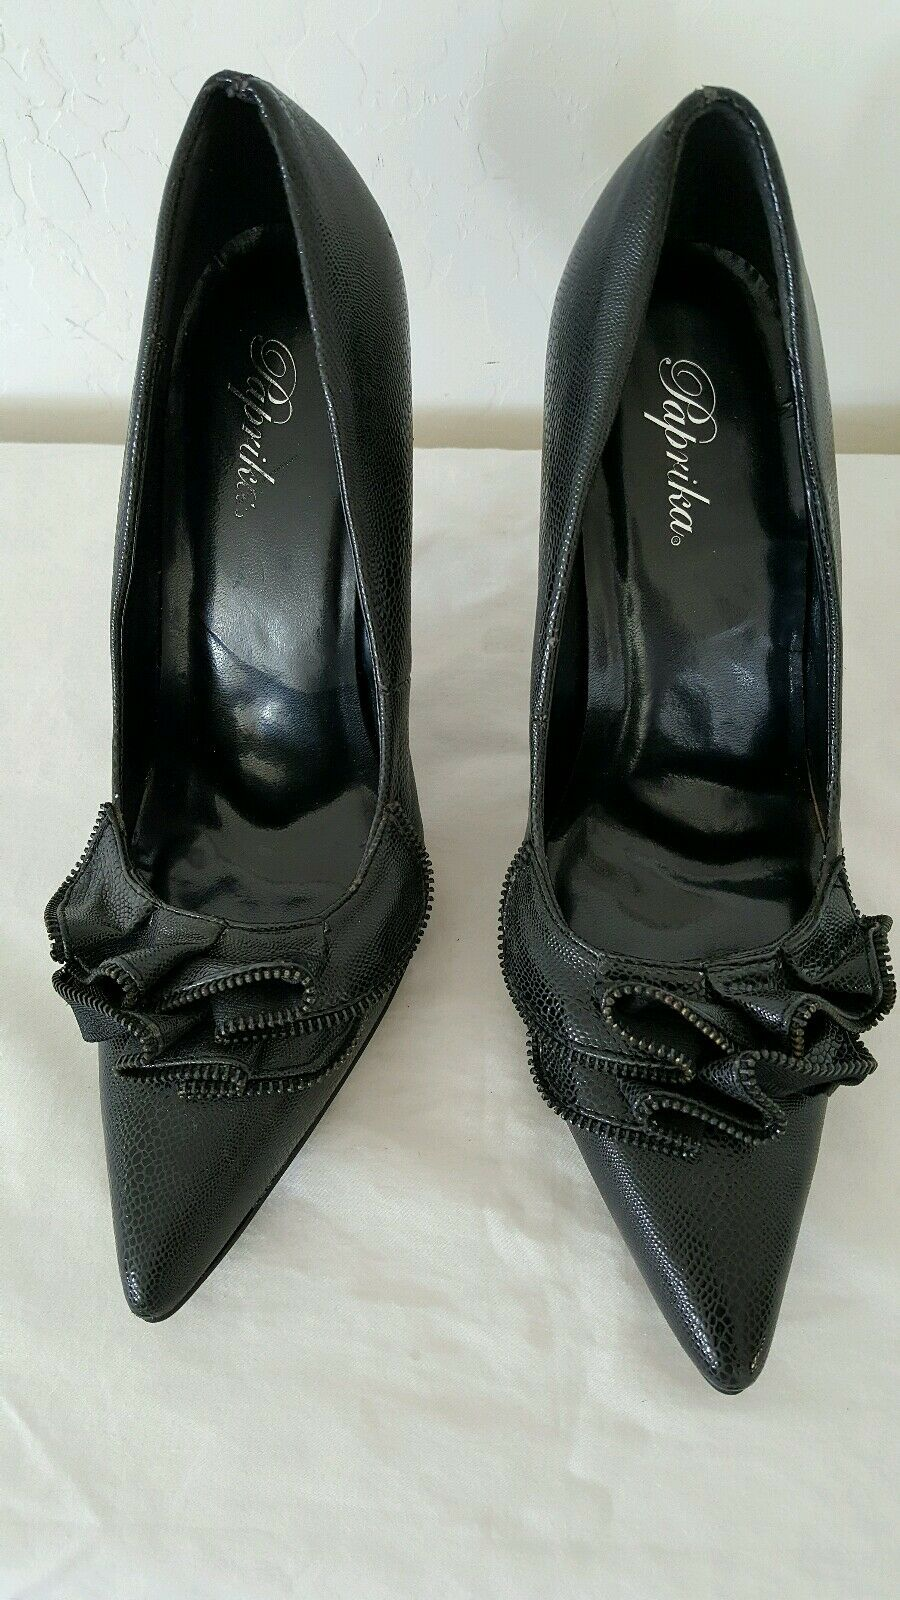 Paprika women's shoes. Gorgeous SZ and sexy black pumps SZ Gorgeous 9 8a8acd